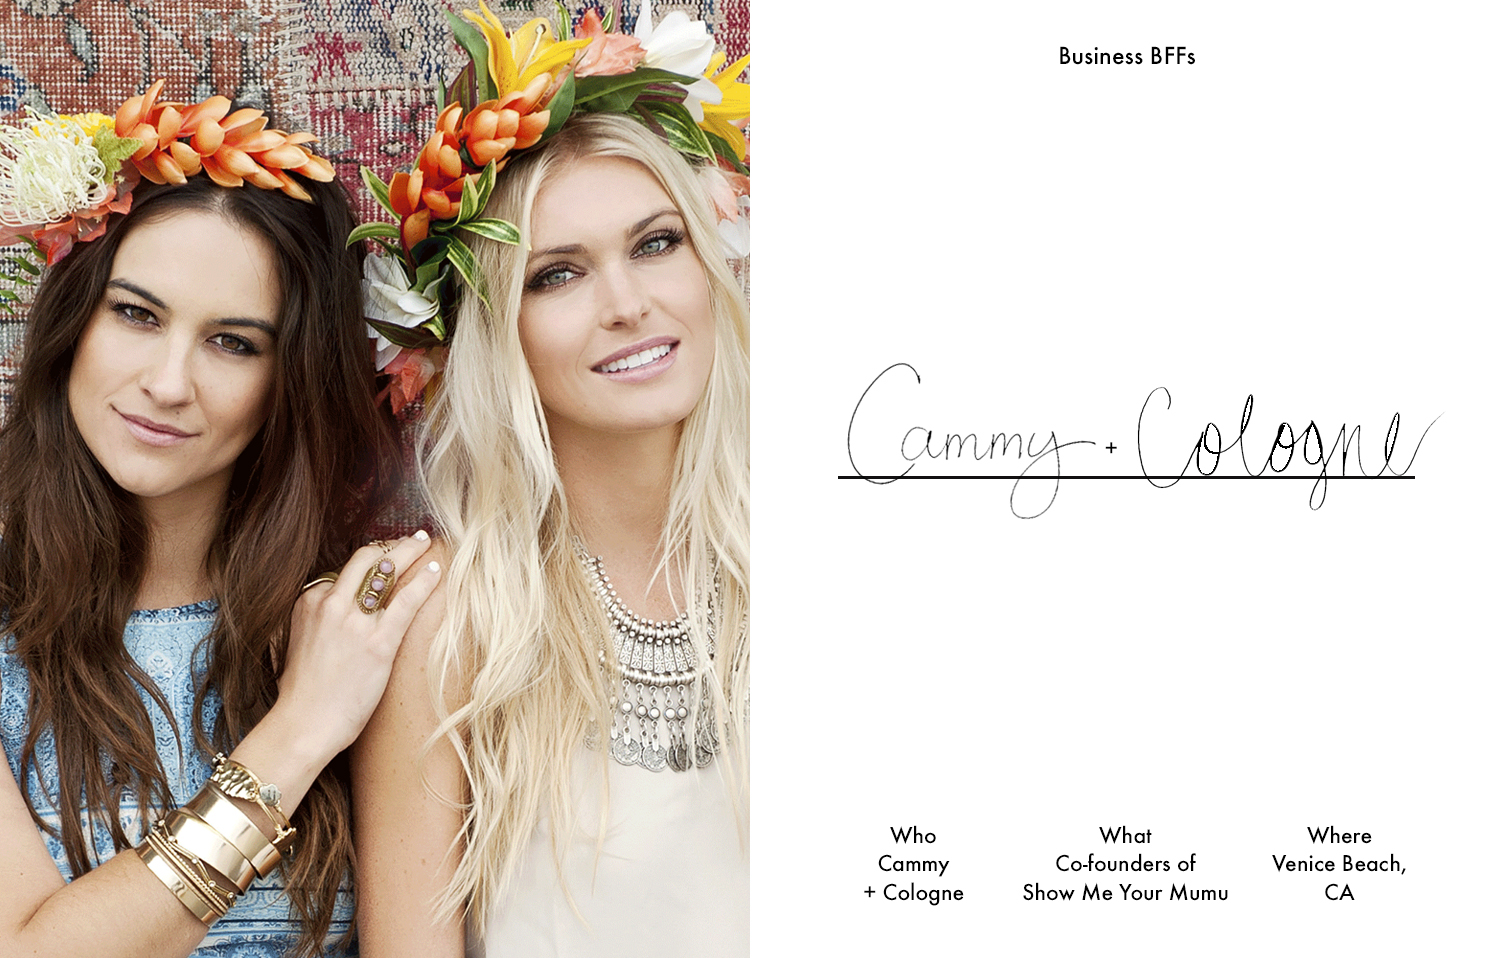 BFFsin Business: Cammy (left) and Cologne (right) of Show Me Your Mumu